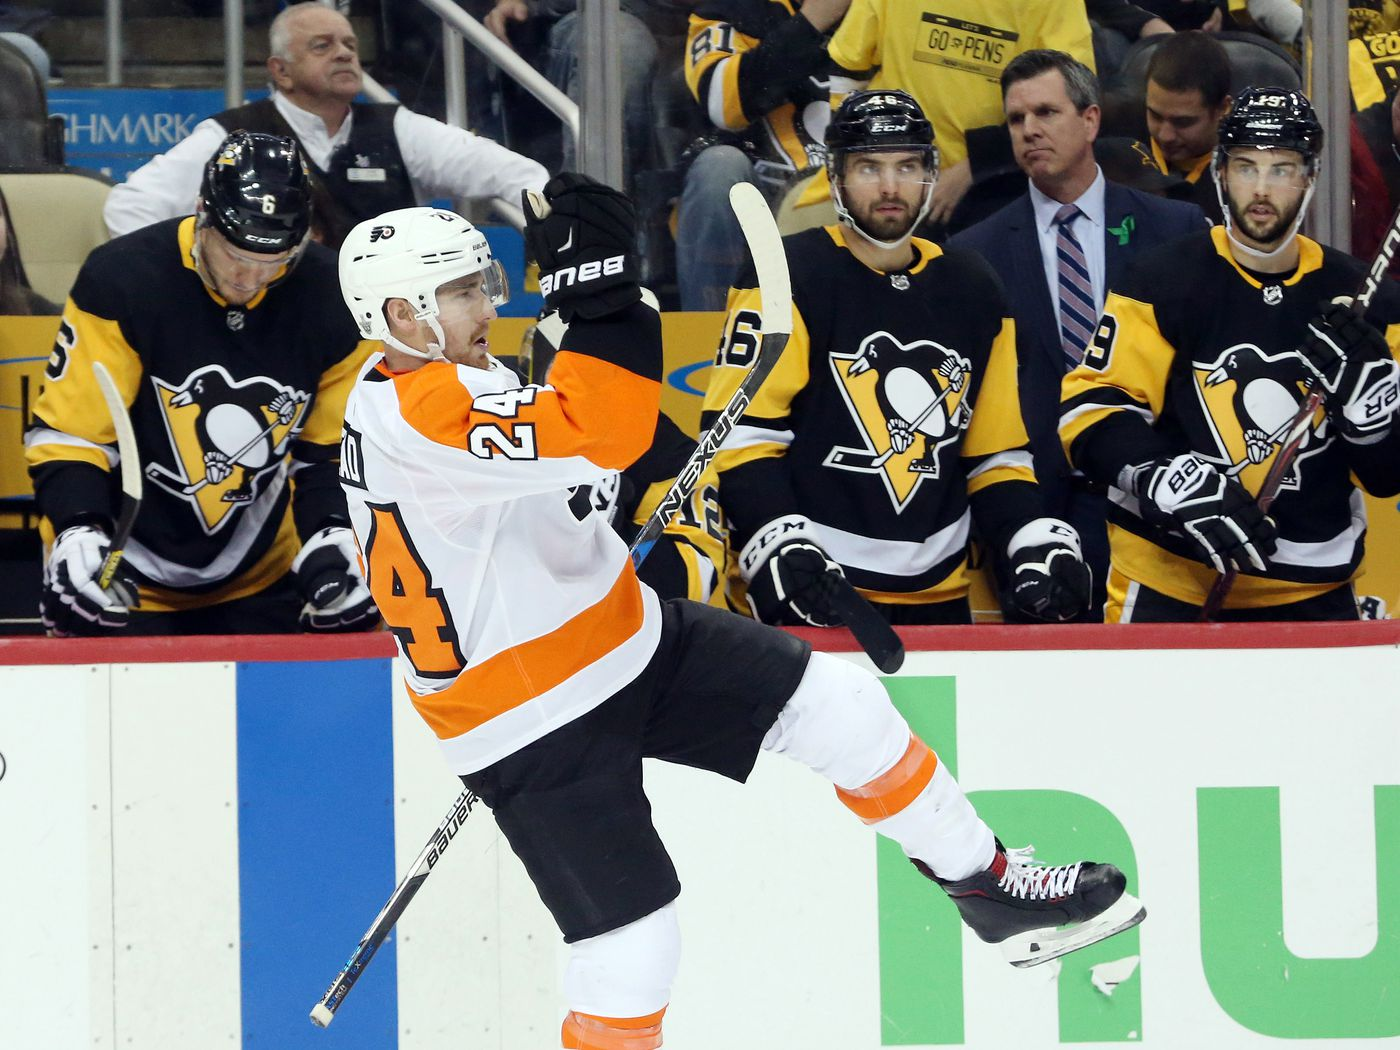 2017 18 Philadelphia Flyers Player Review Matt Read So Long To Our